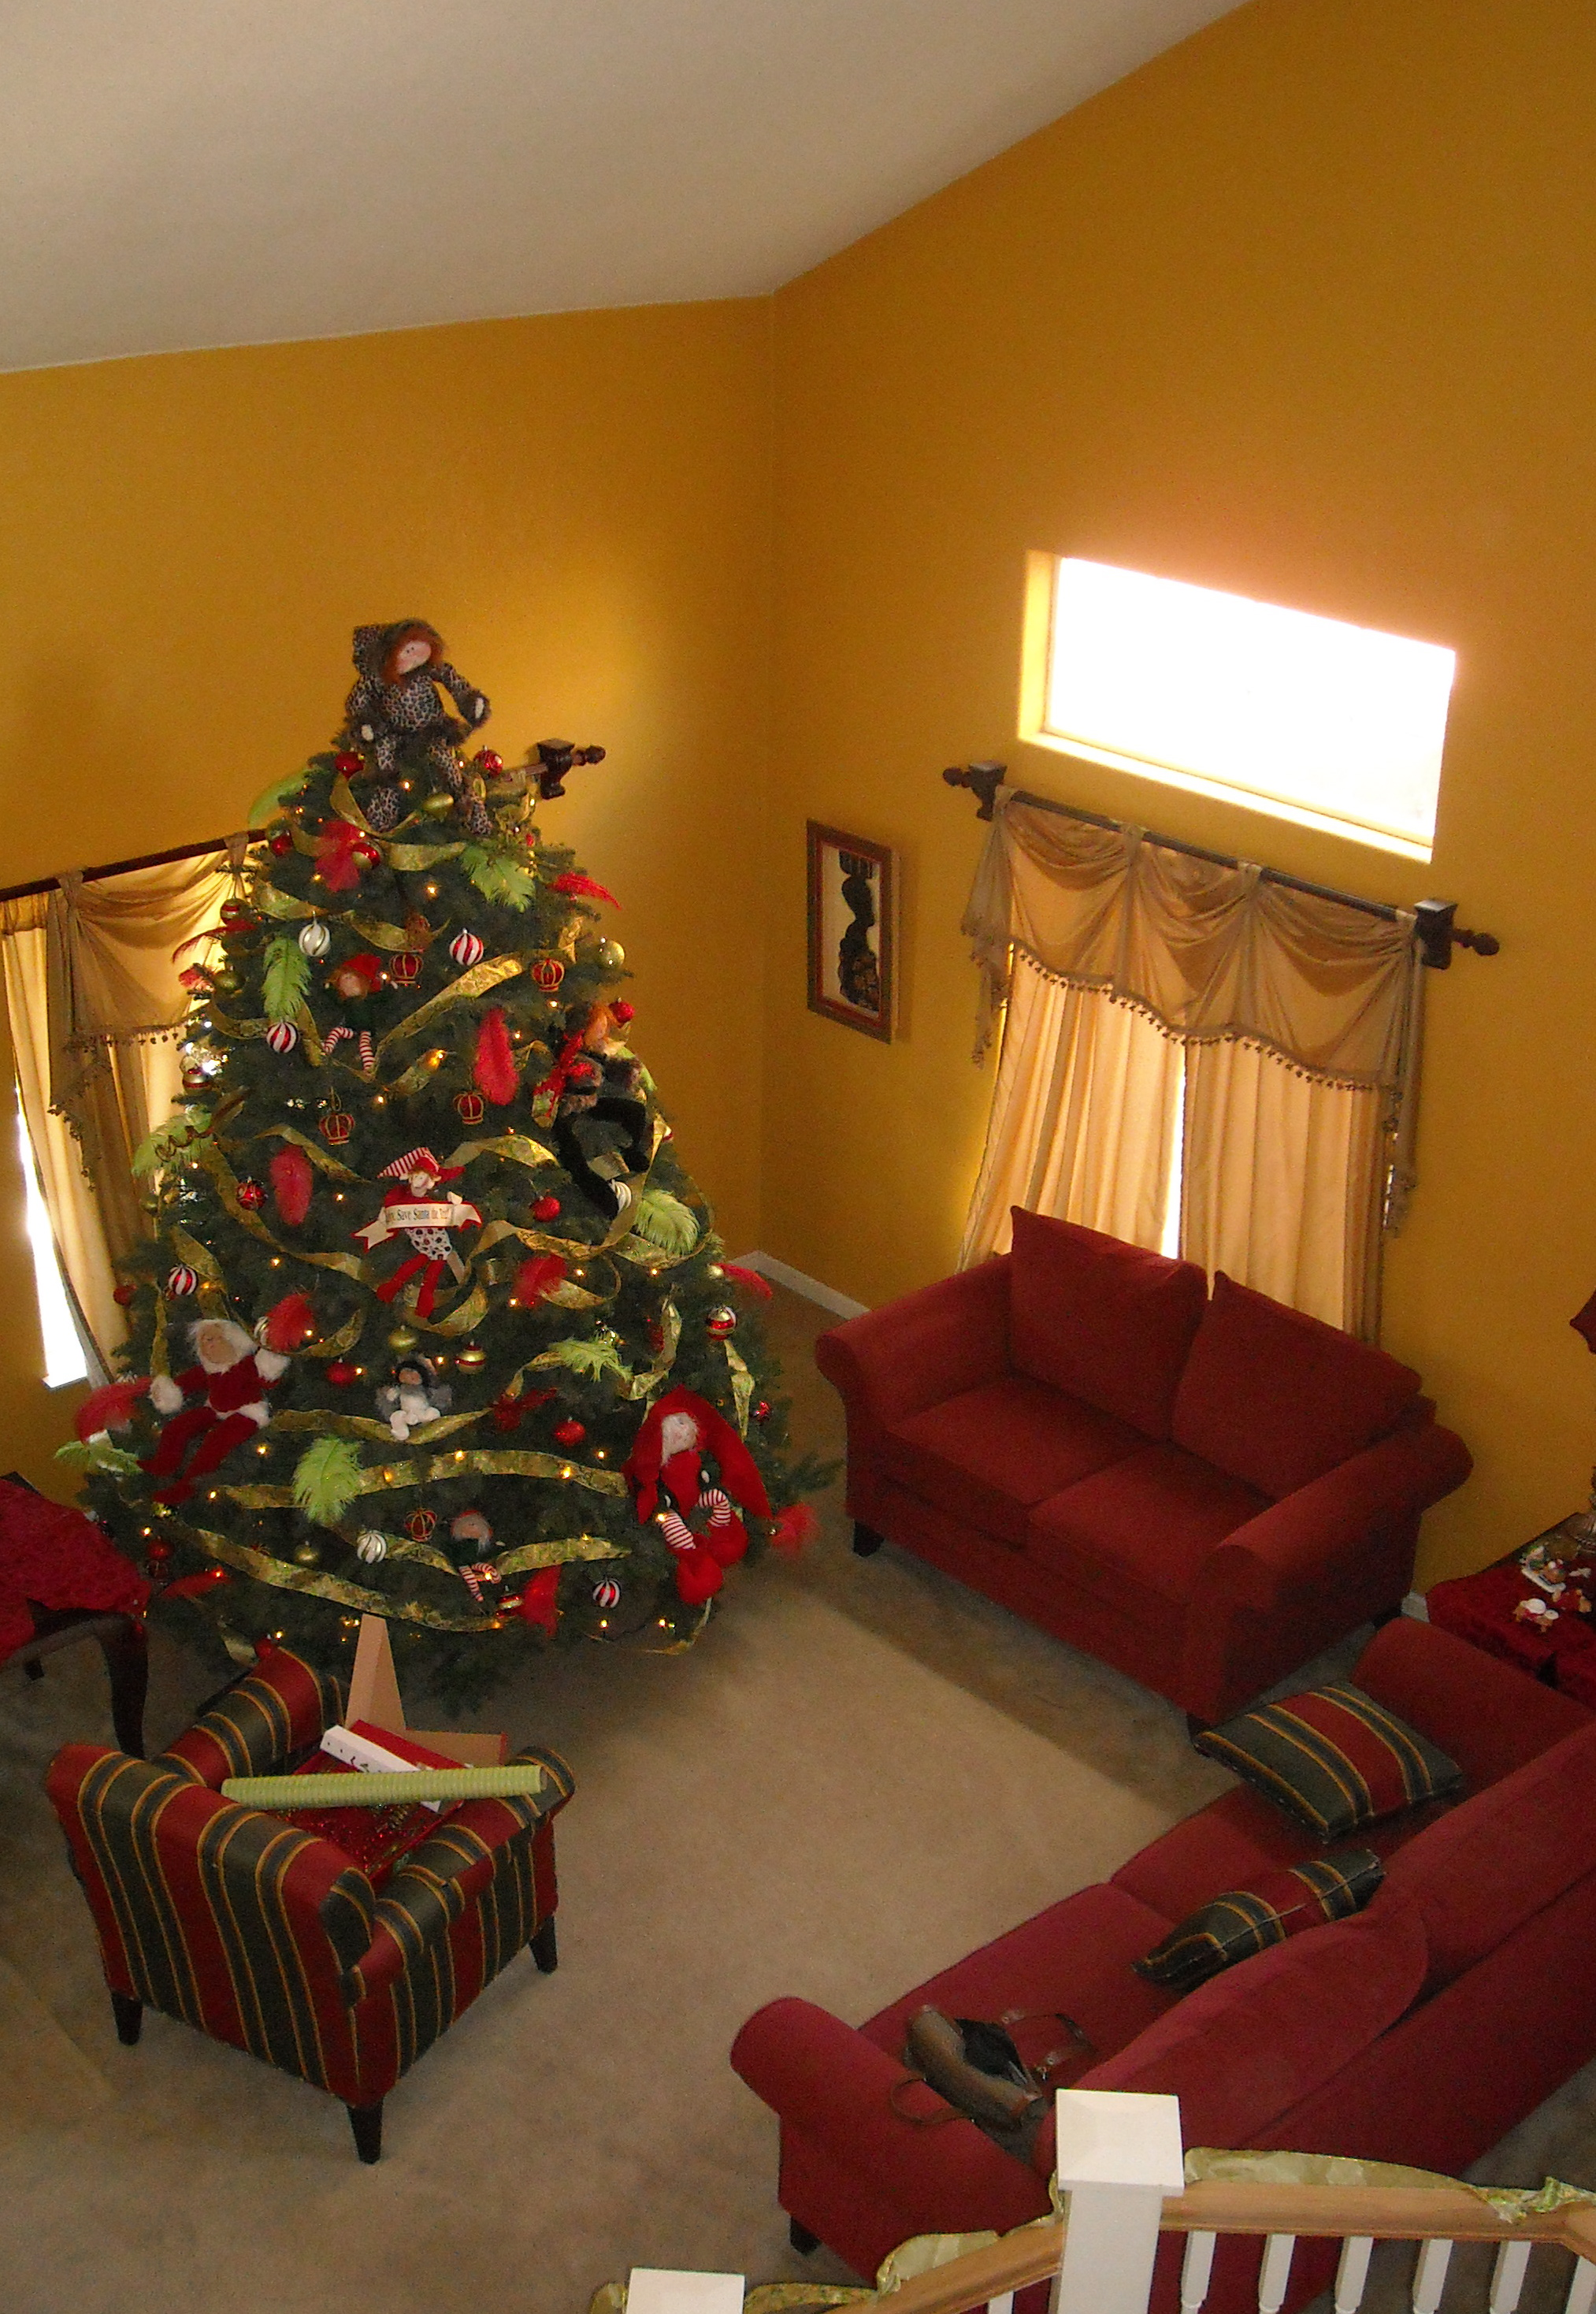 My Christmas Tree before the dogs decided to play tug 'o war with it.